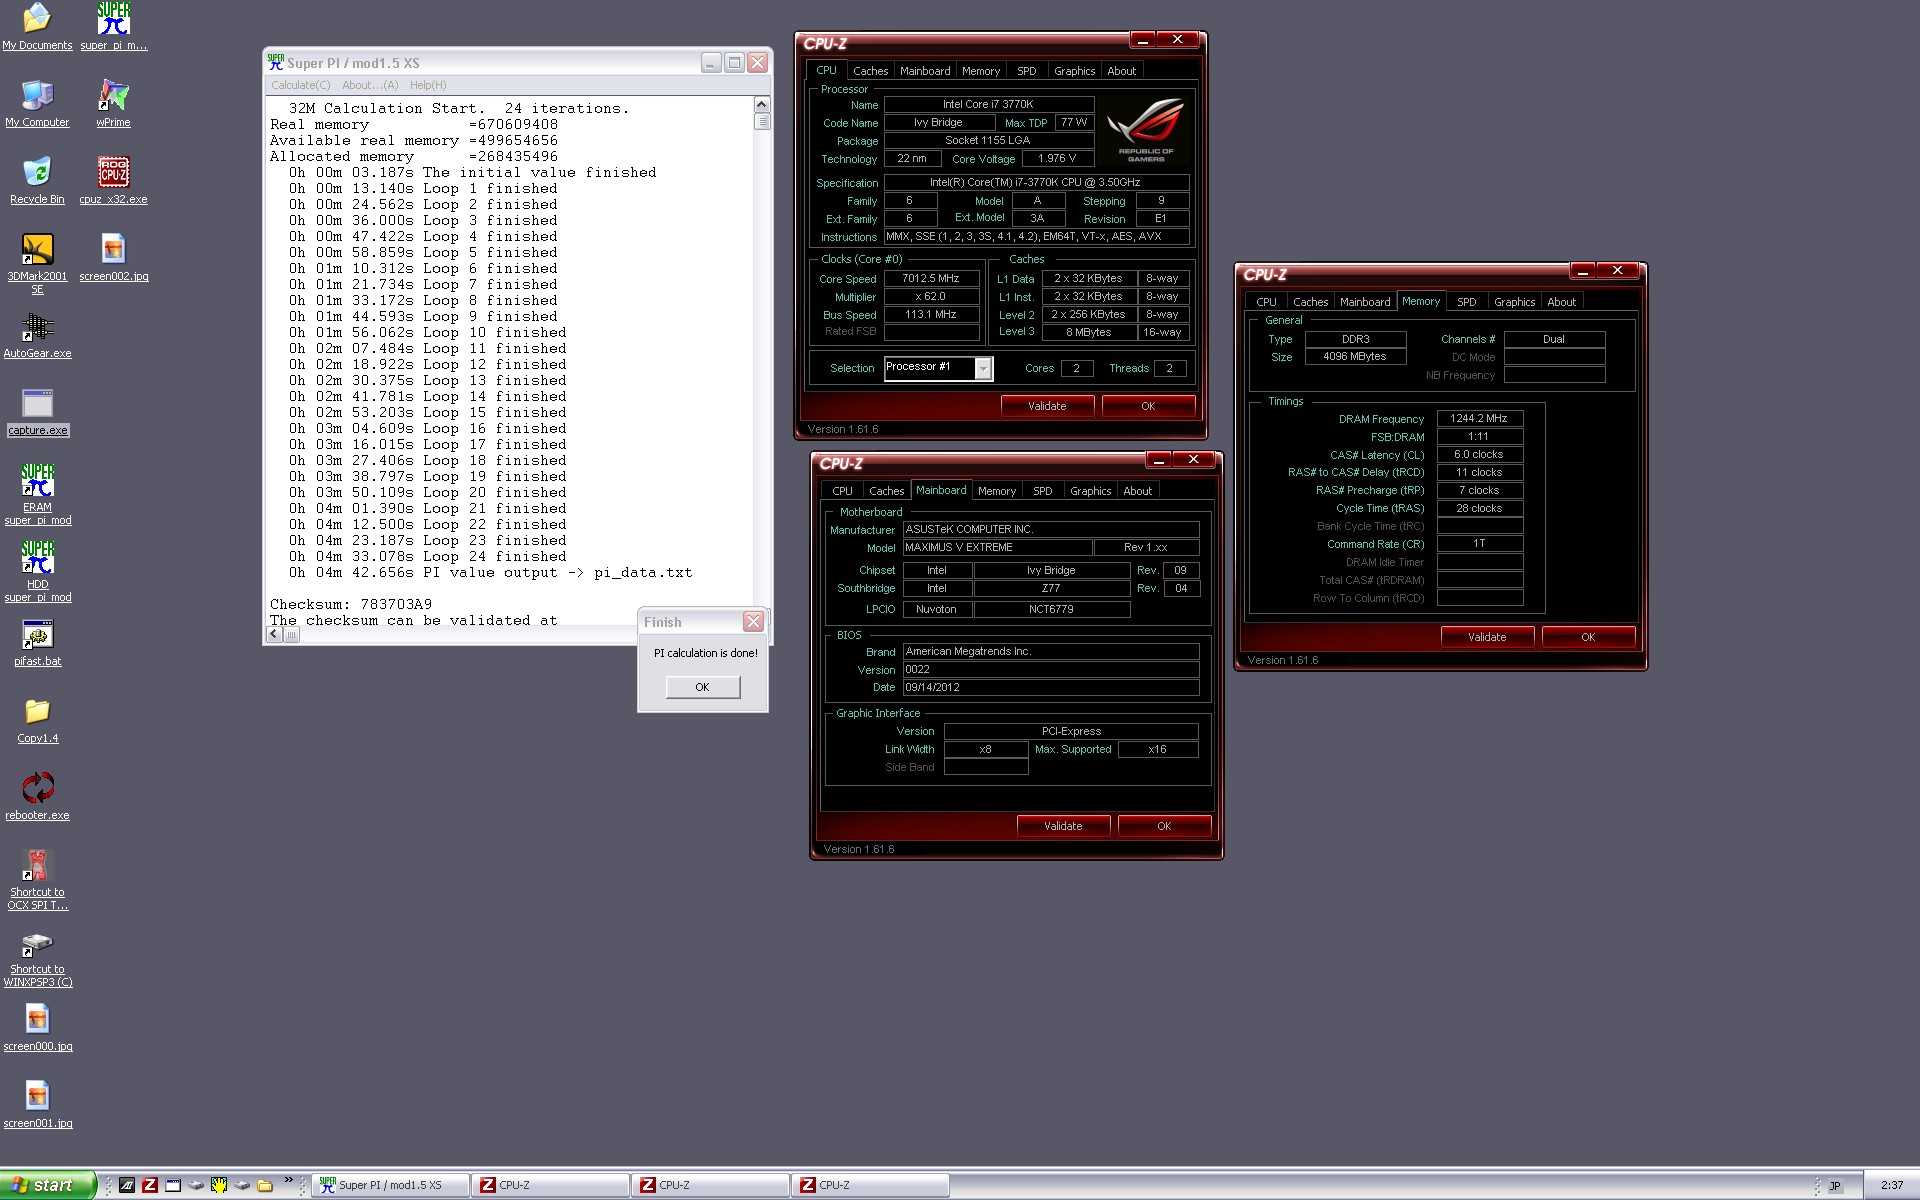 7GHz Core i7-3770K Hits SuperPi 32M World Record By Andre